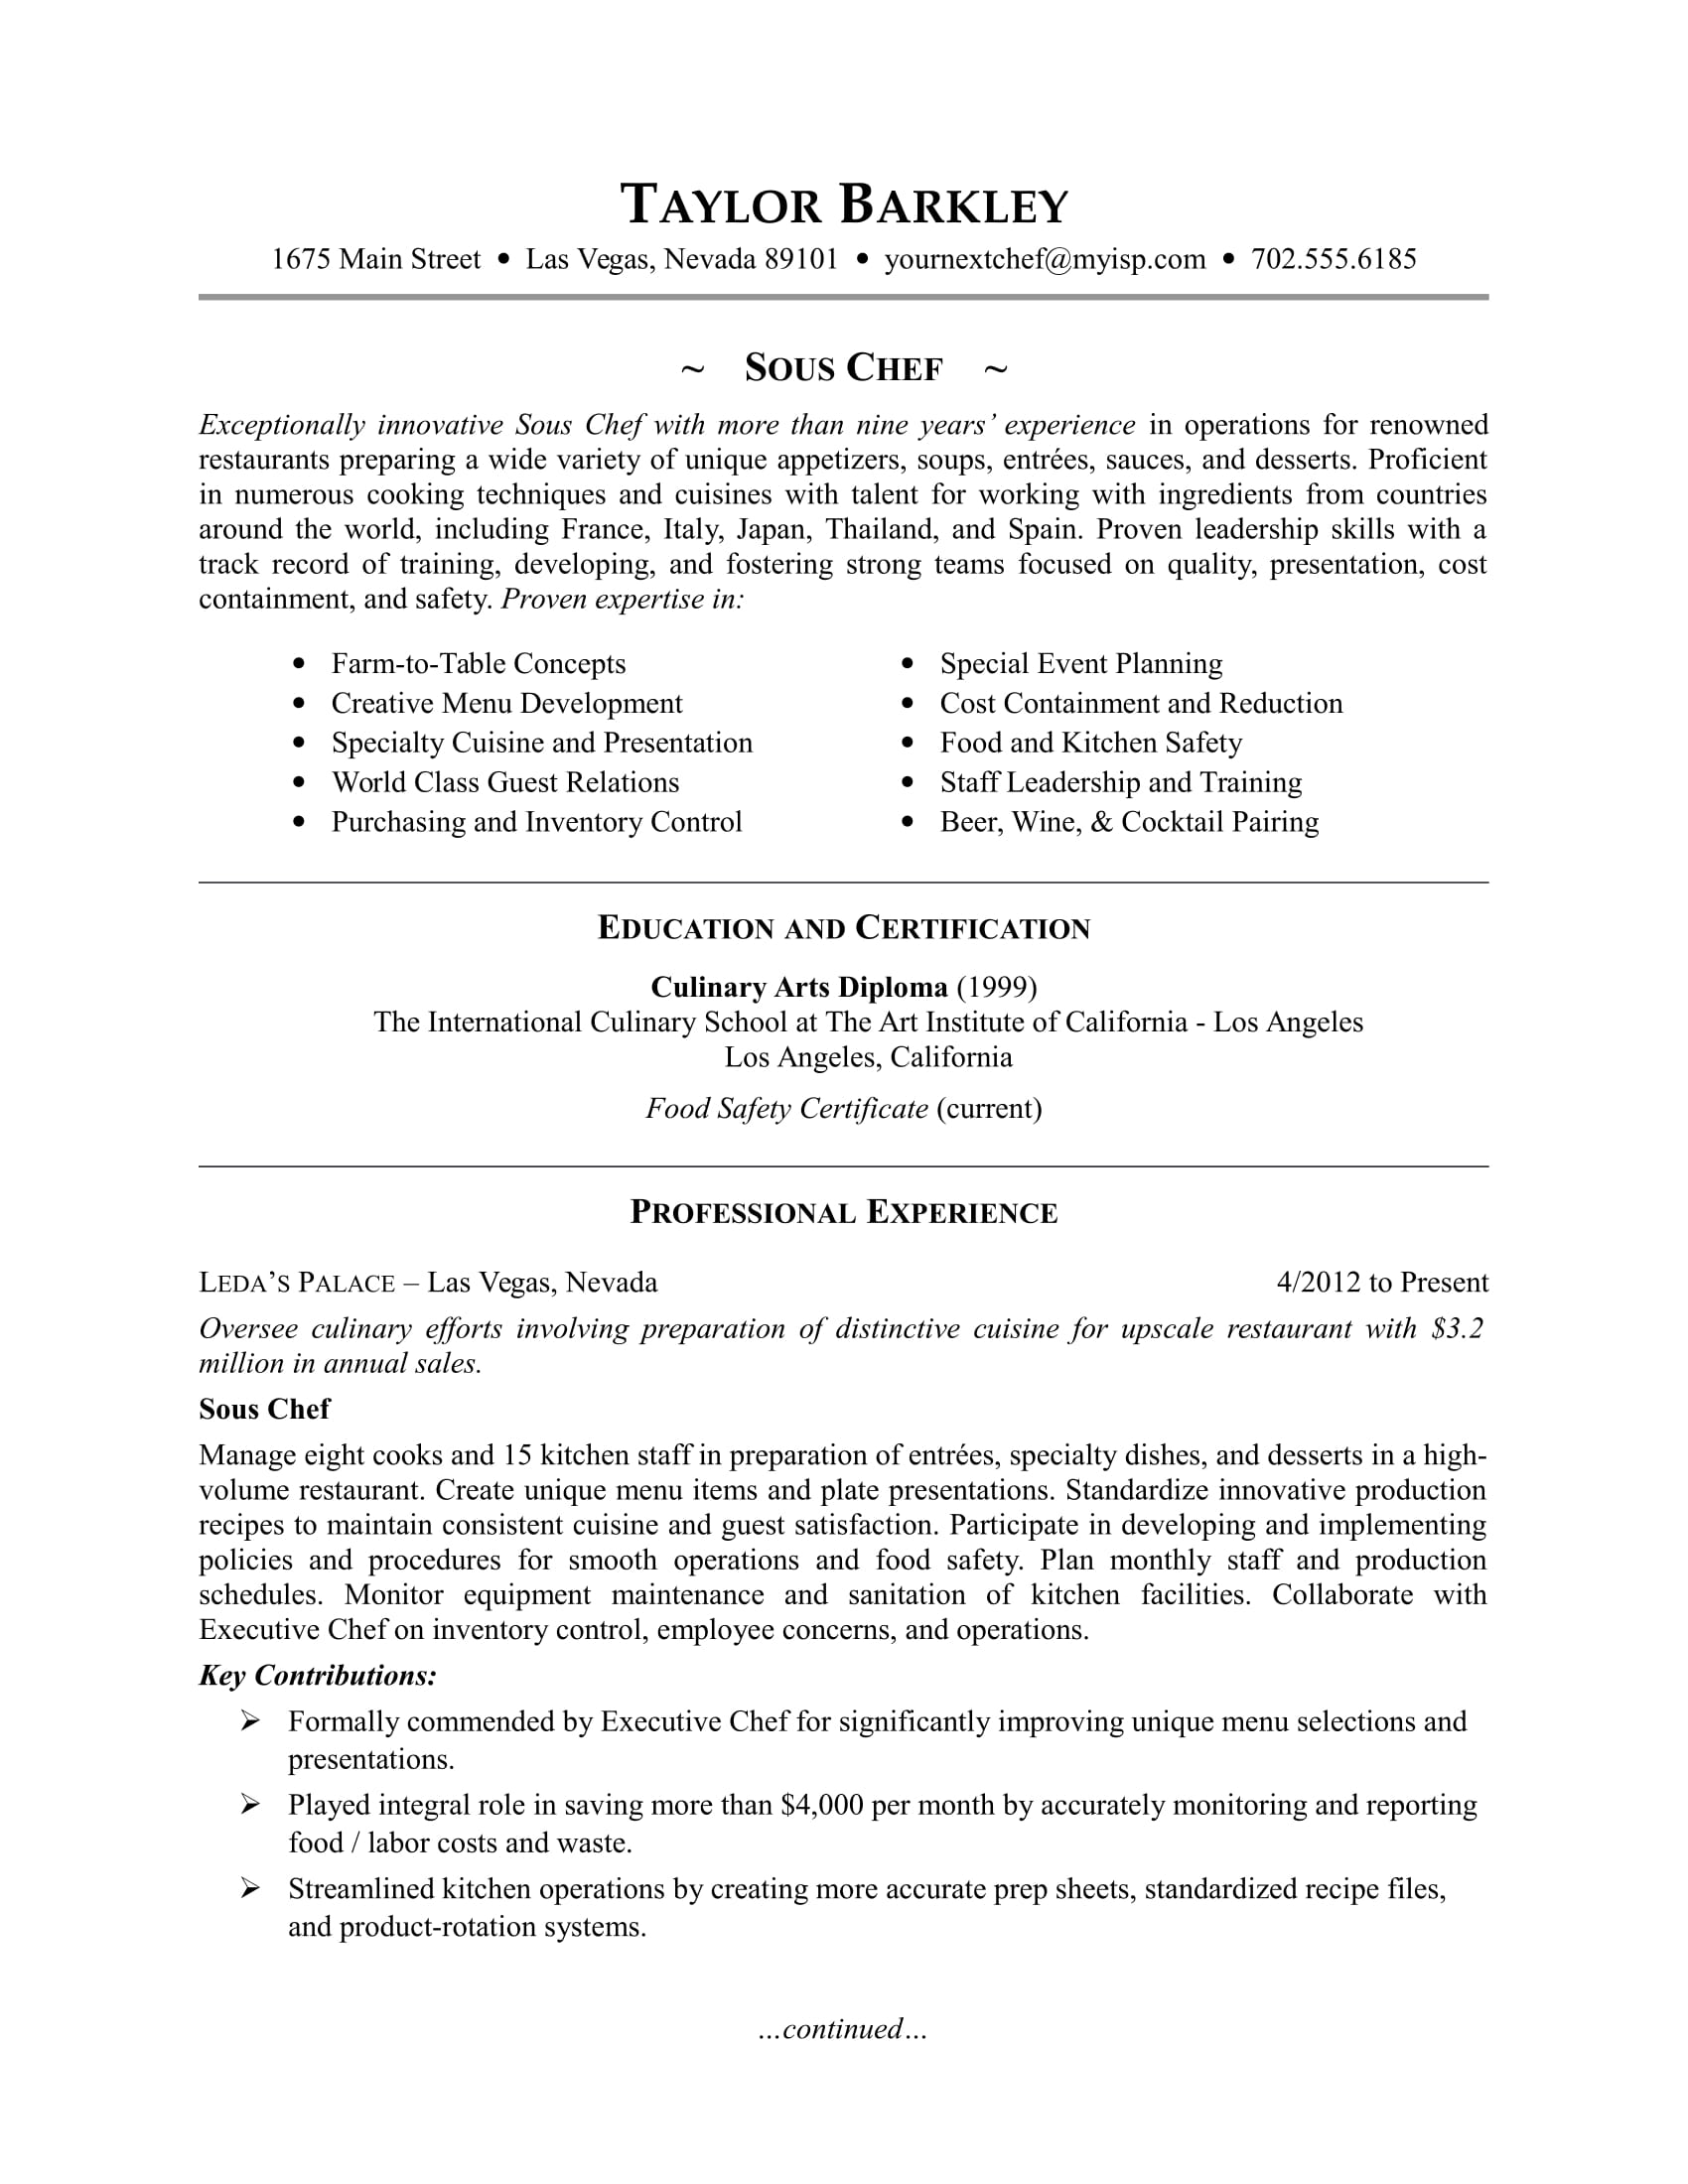 Sample Resume For A Sous Chef  Skills Sample Resume